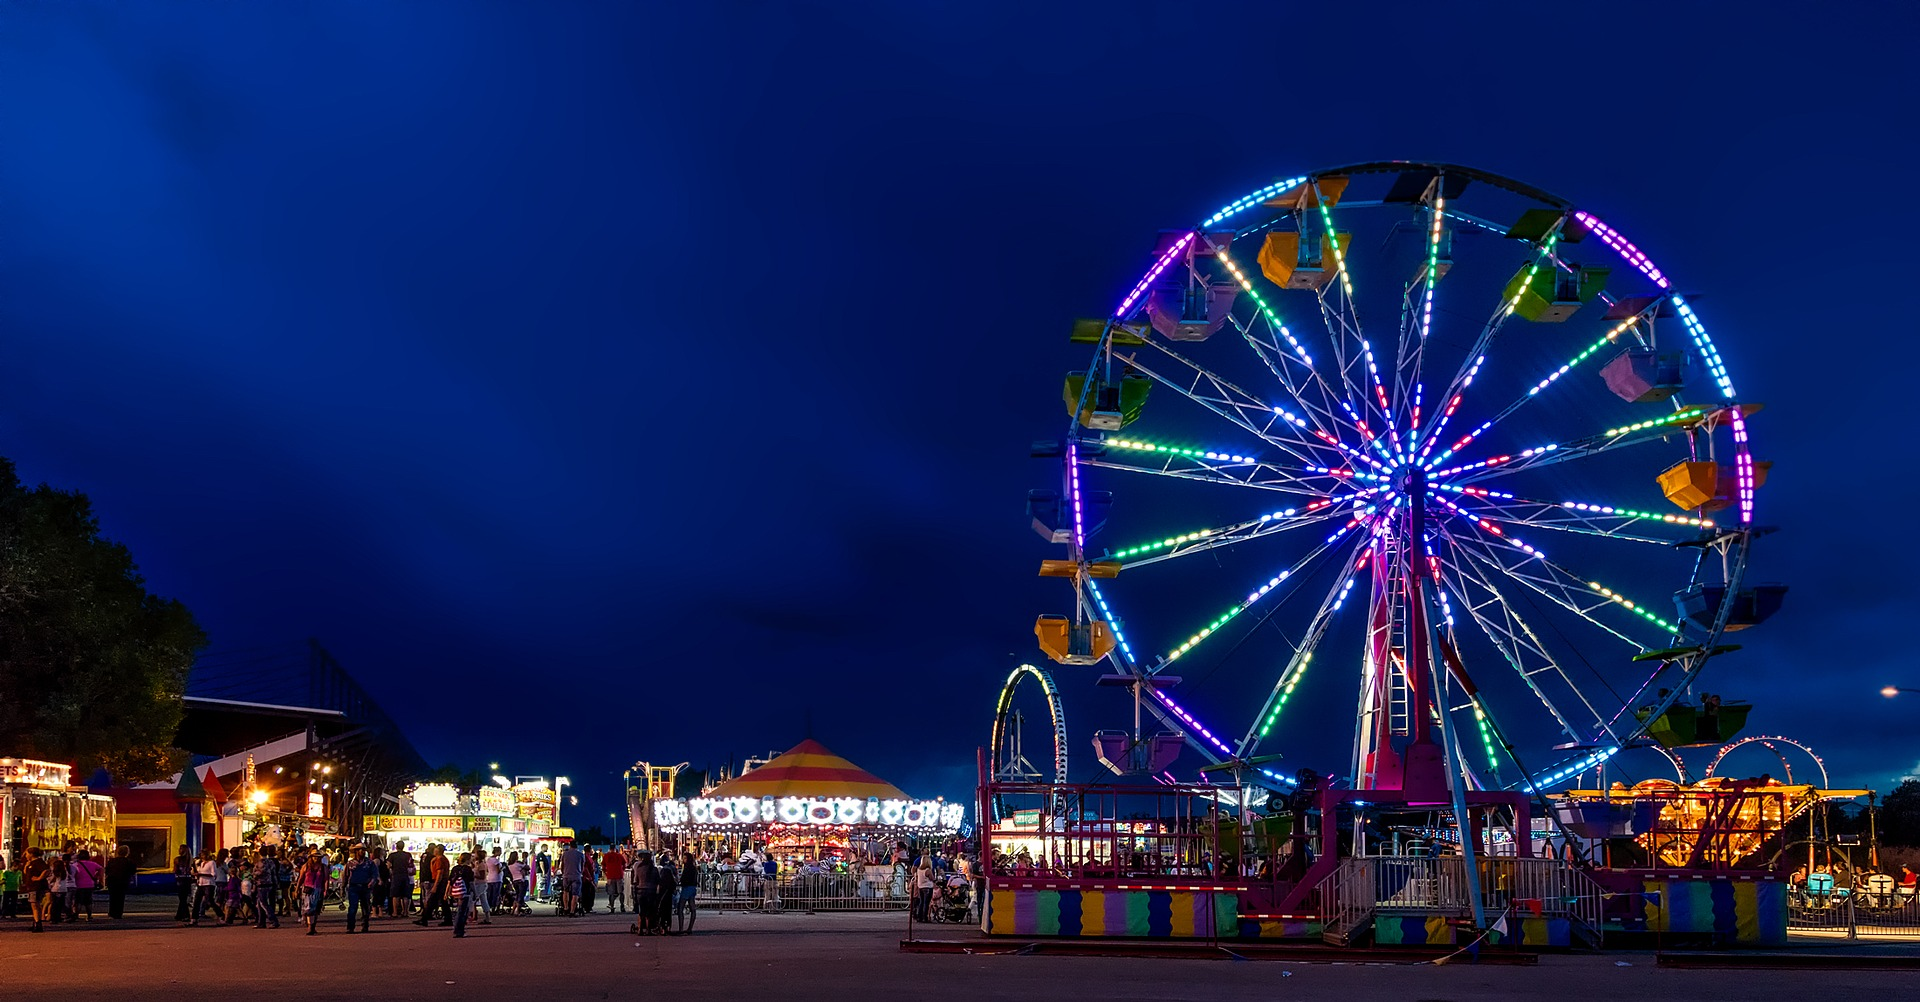 2019 Fairs and Festivals in Midcoast Maine - Camden